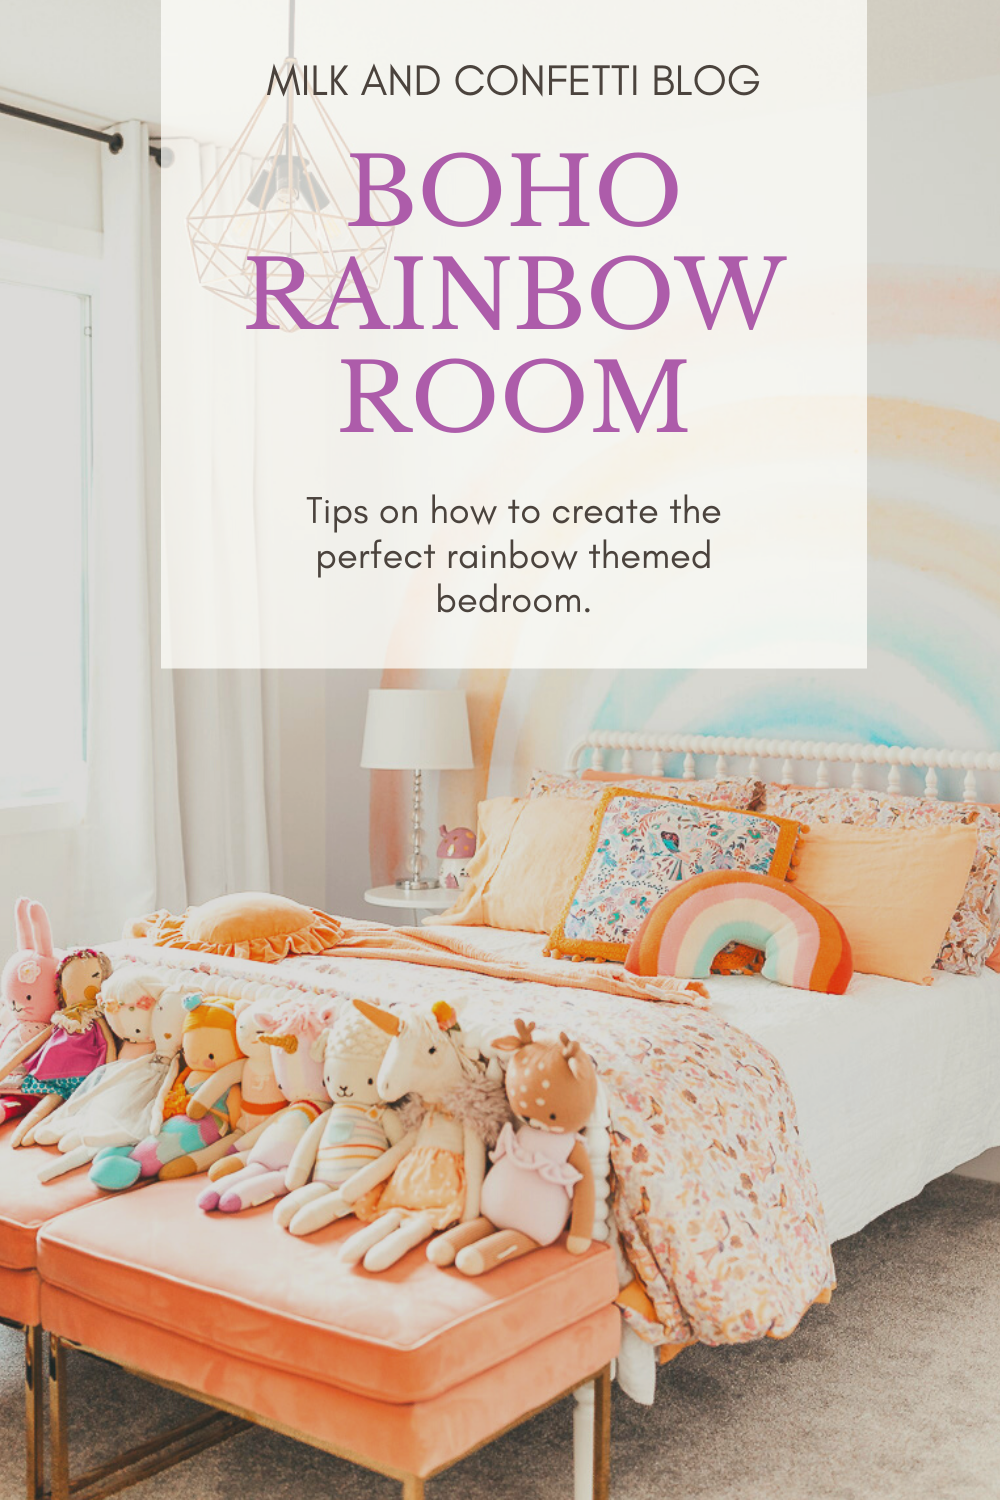 A boho rainbow bedroom with a white Jenny Lind bed and some handmade dolls sitting on a coral velvet bench.